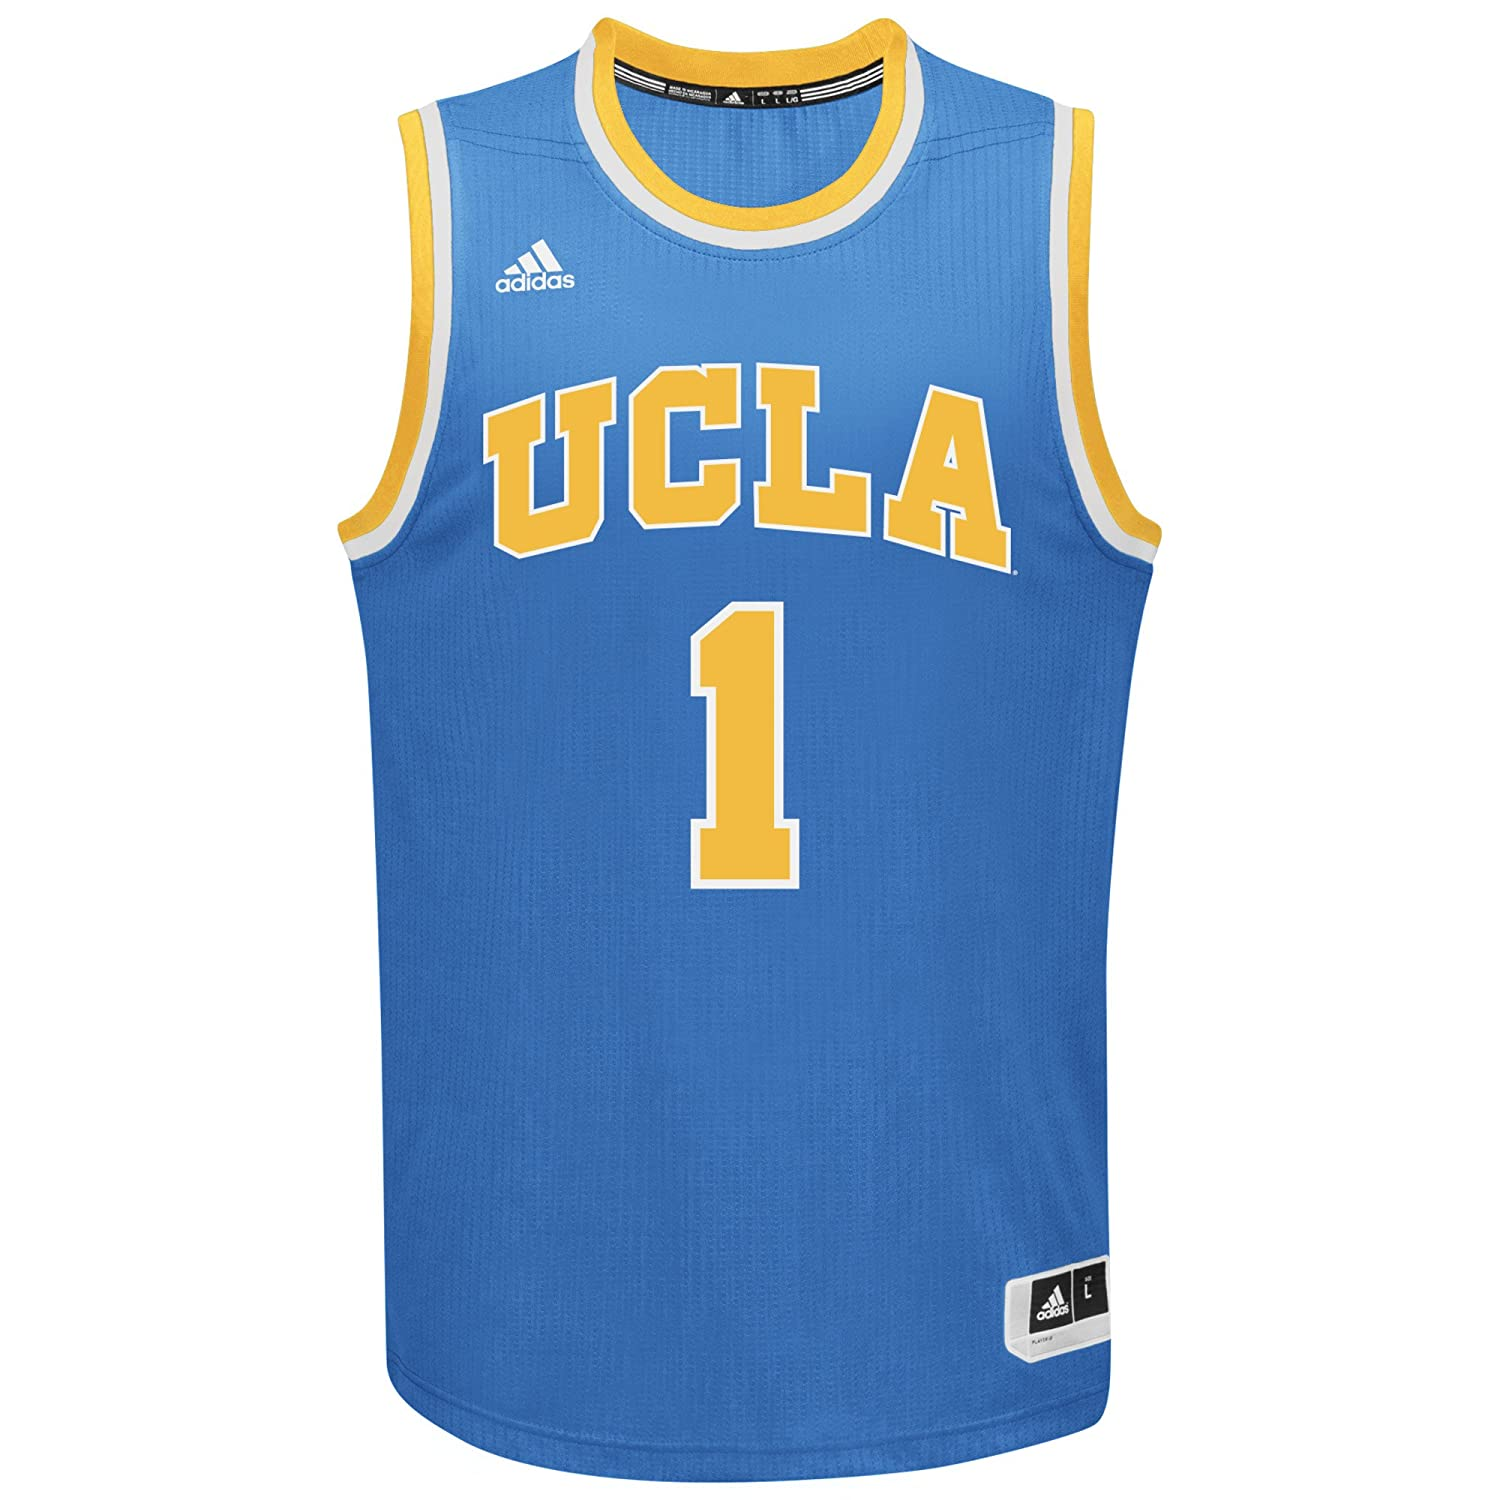 1ad3d137edd2 Amazon.com   NCAA UCLA Bruins Men s Basketball Replica Jersey